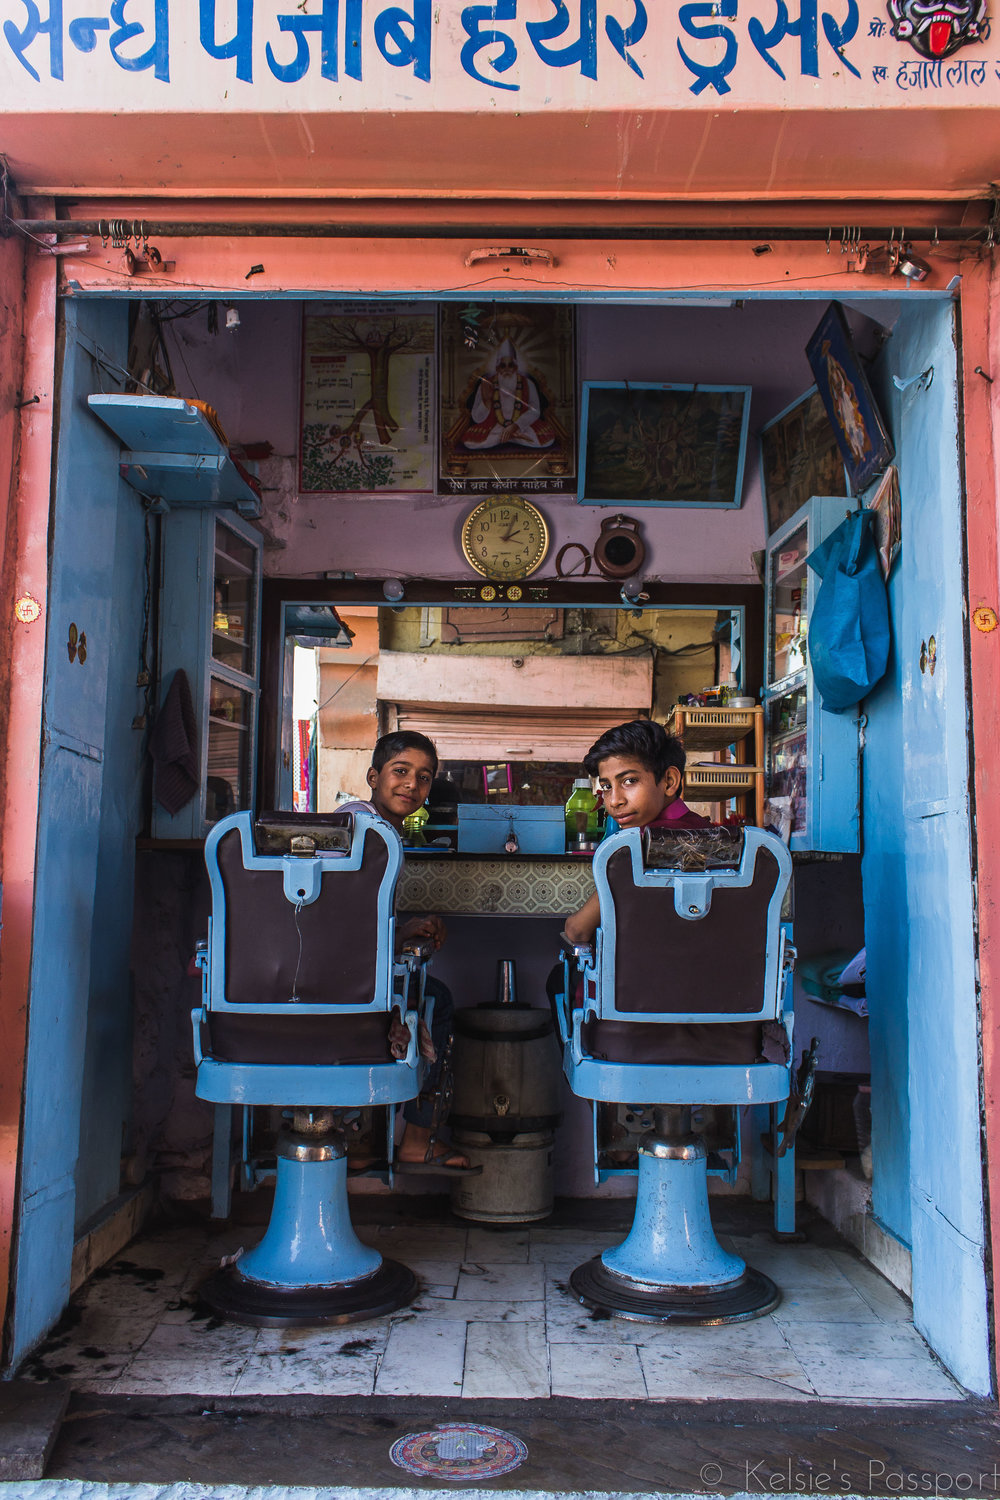 Two boys take advantage of no customers in a barber shop.